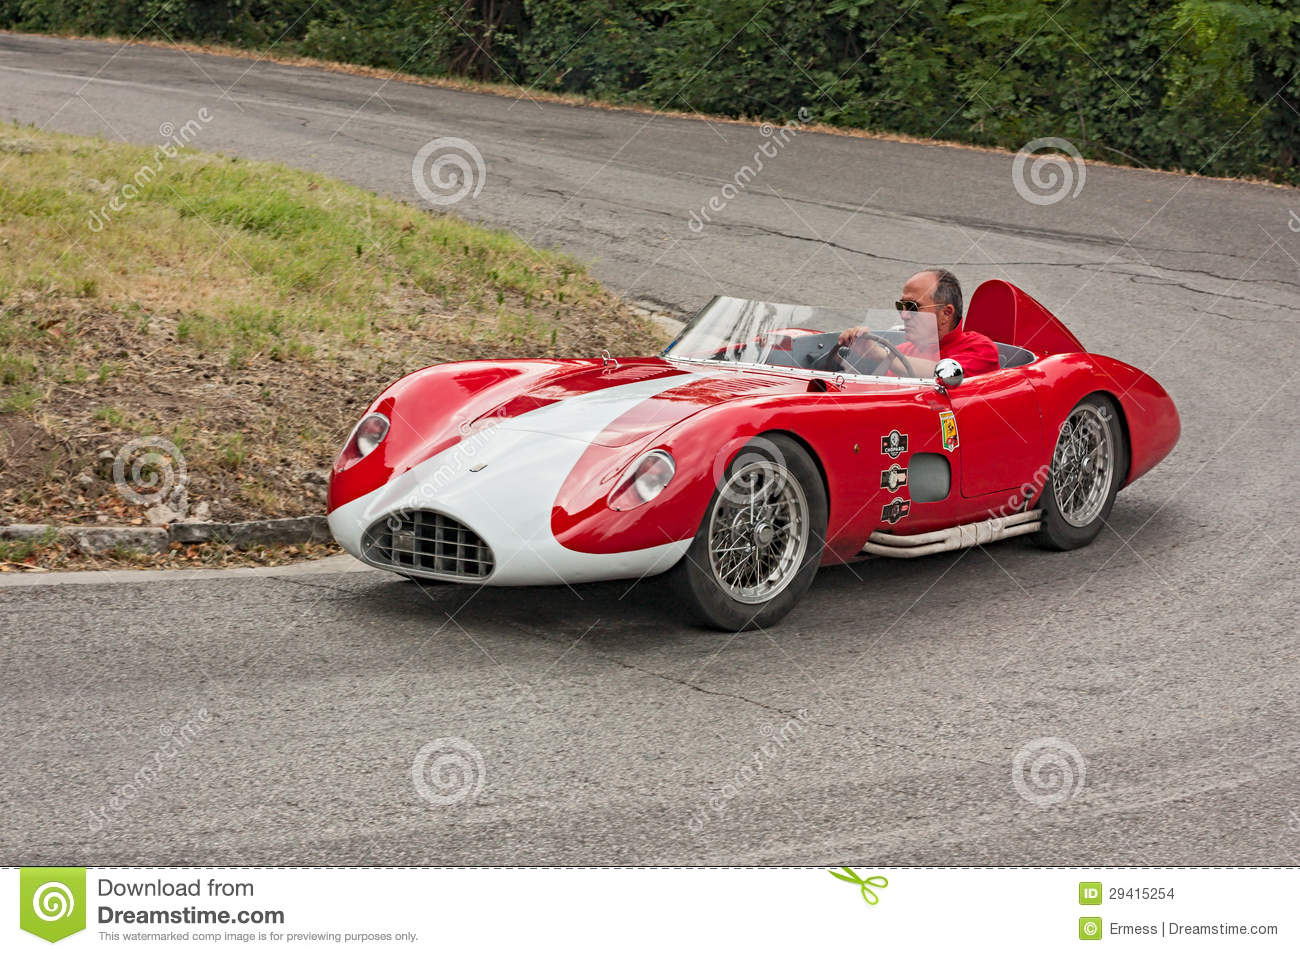 Old Racing Car Bandini 750 Sport Editorial Stock Image - Image of ...